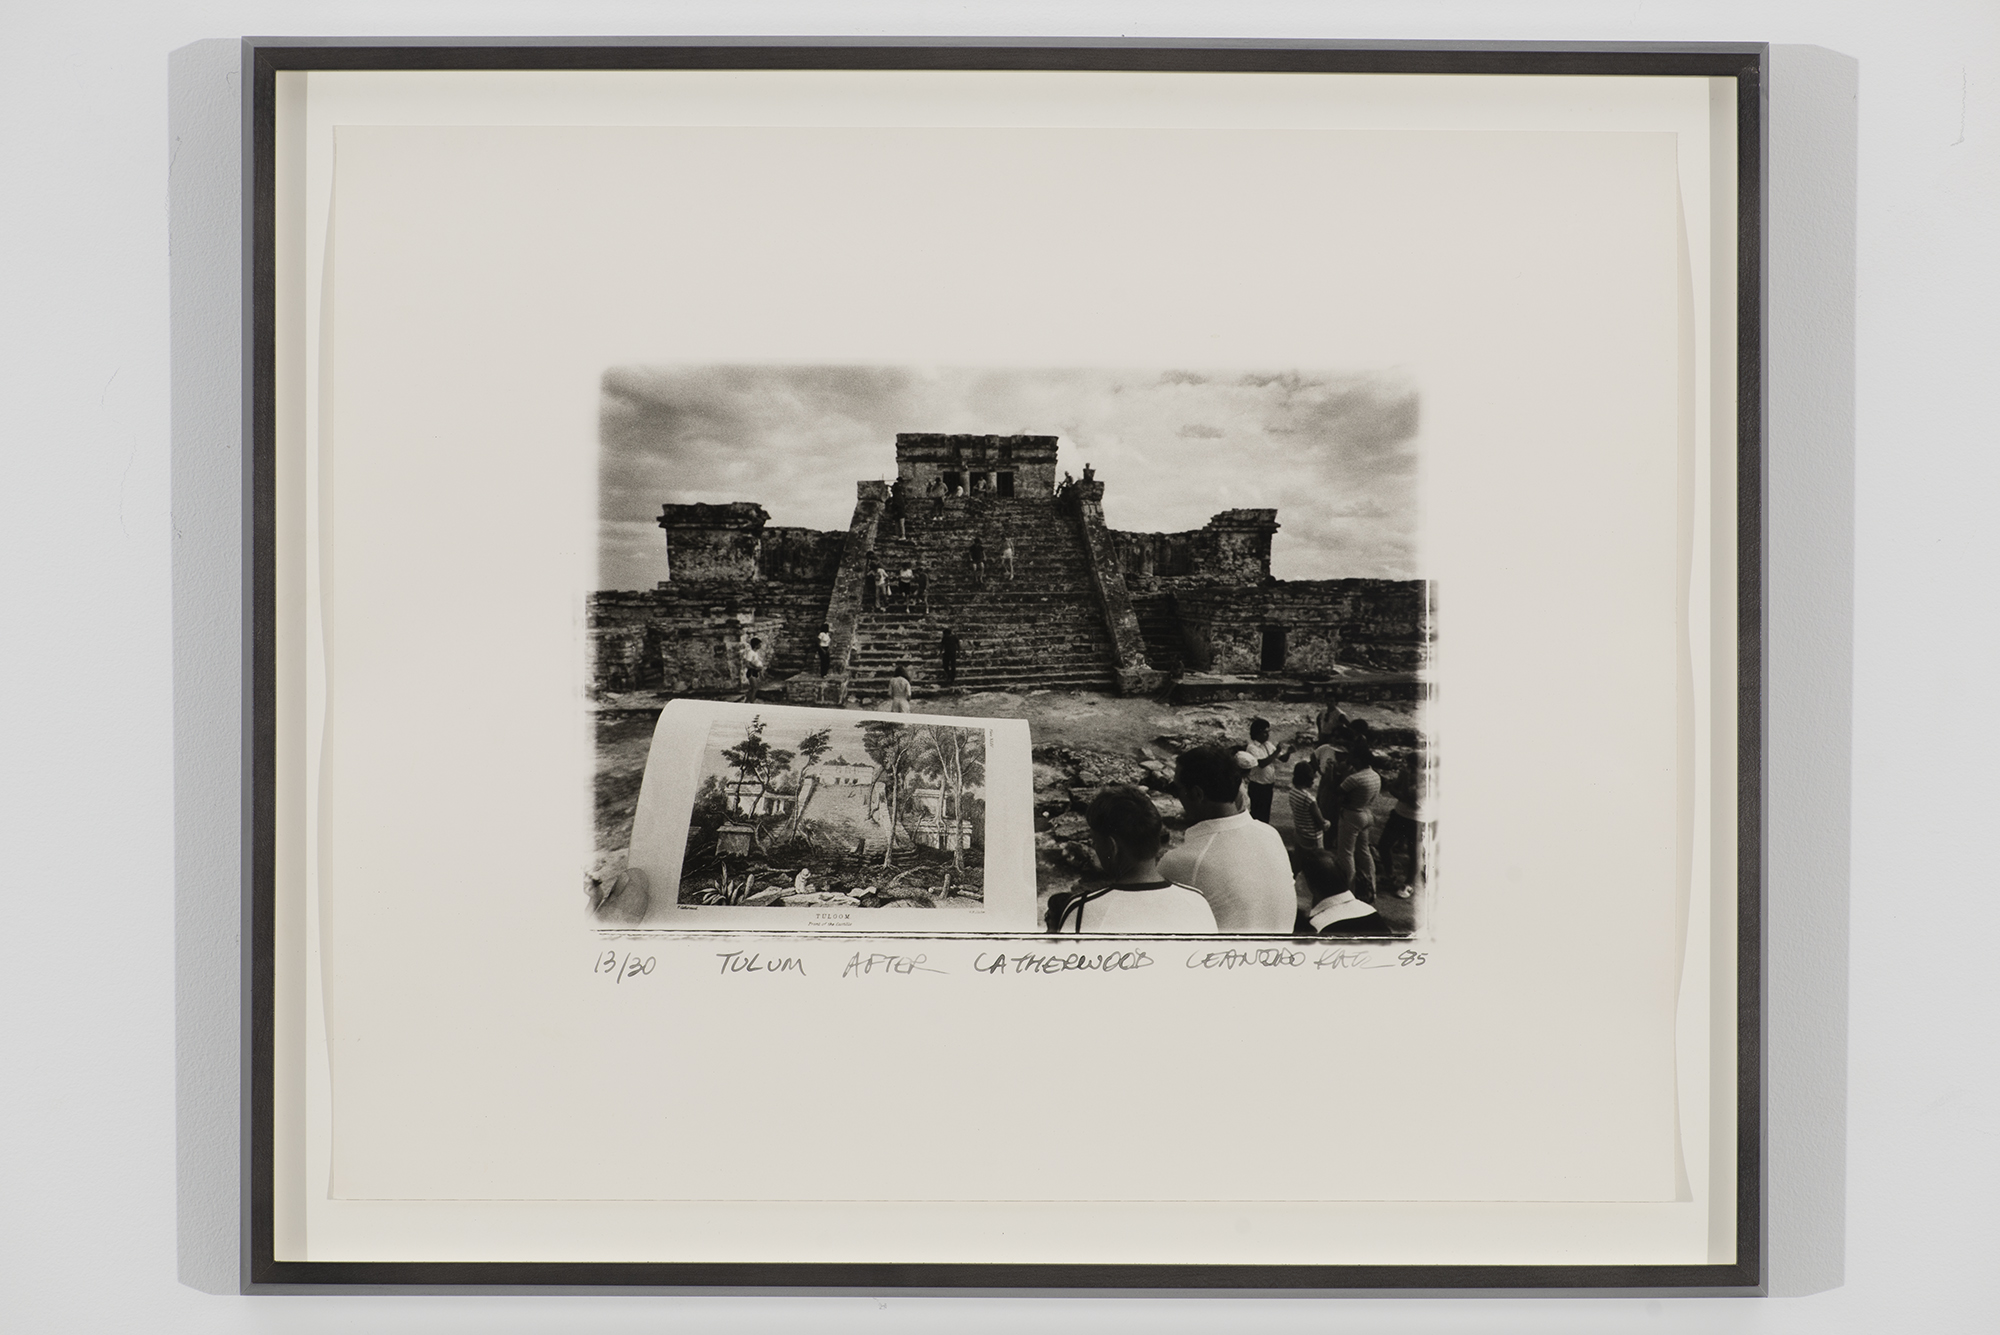 Leandro Katz,    El Castillo [Chichén Itzá],  1985. Gelatin silver print, 20 x 16 inches. The Museum of Modern Art. Promised gift of Patricia Phelps de Cisneros through the Latin American and Caribbean Fund in honor of May Castleberry.